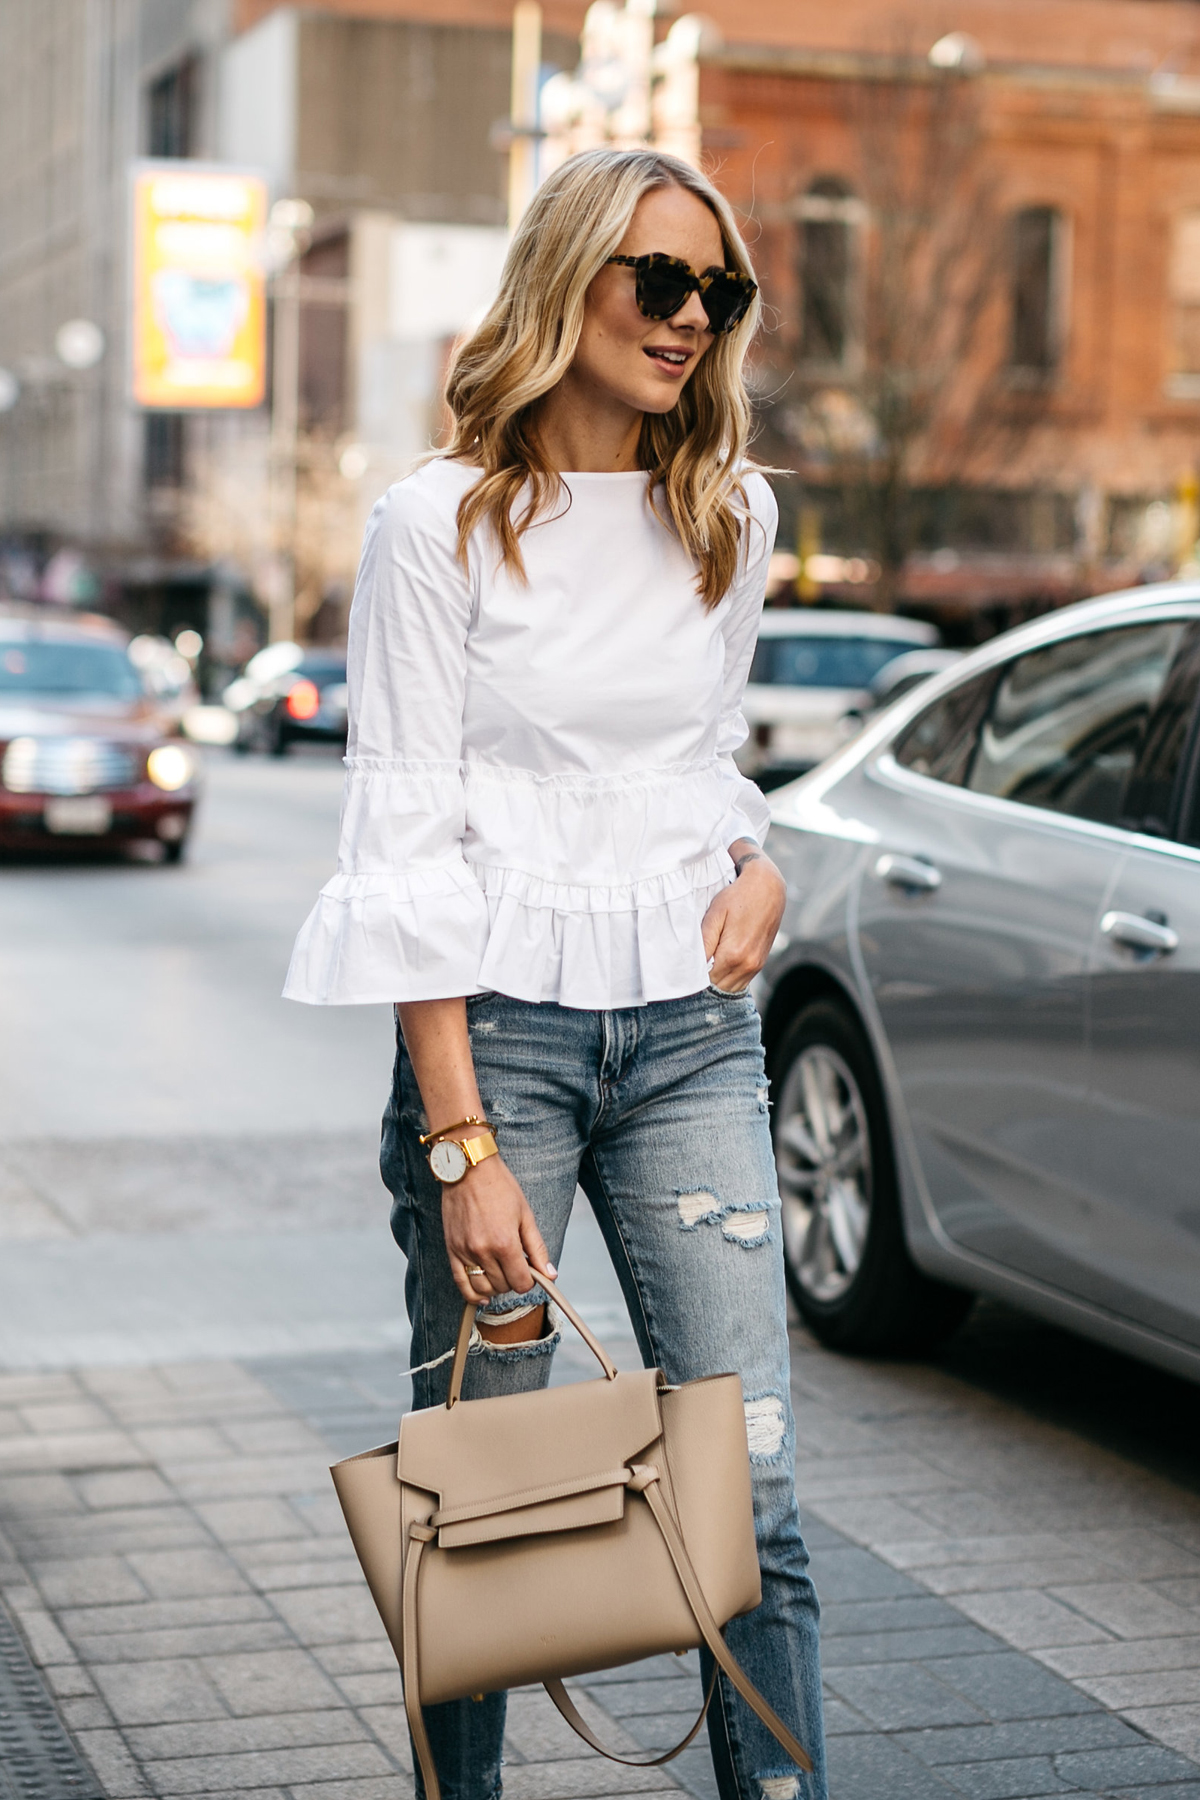 Fashion Jackson, Club Monaco White Ruffle Top, Denim Ripped Relaxed Jeans, Celine Belt Bag